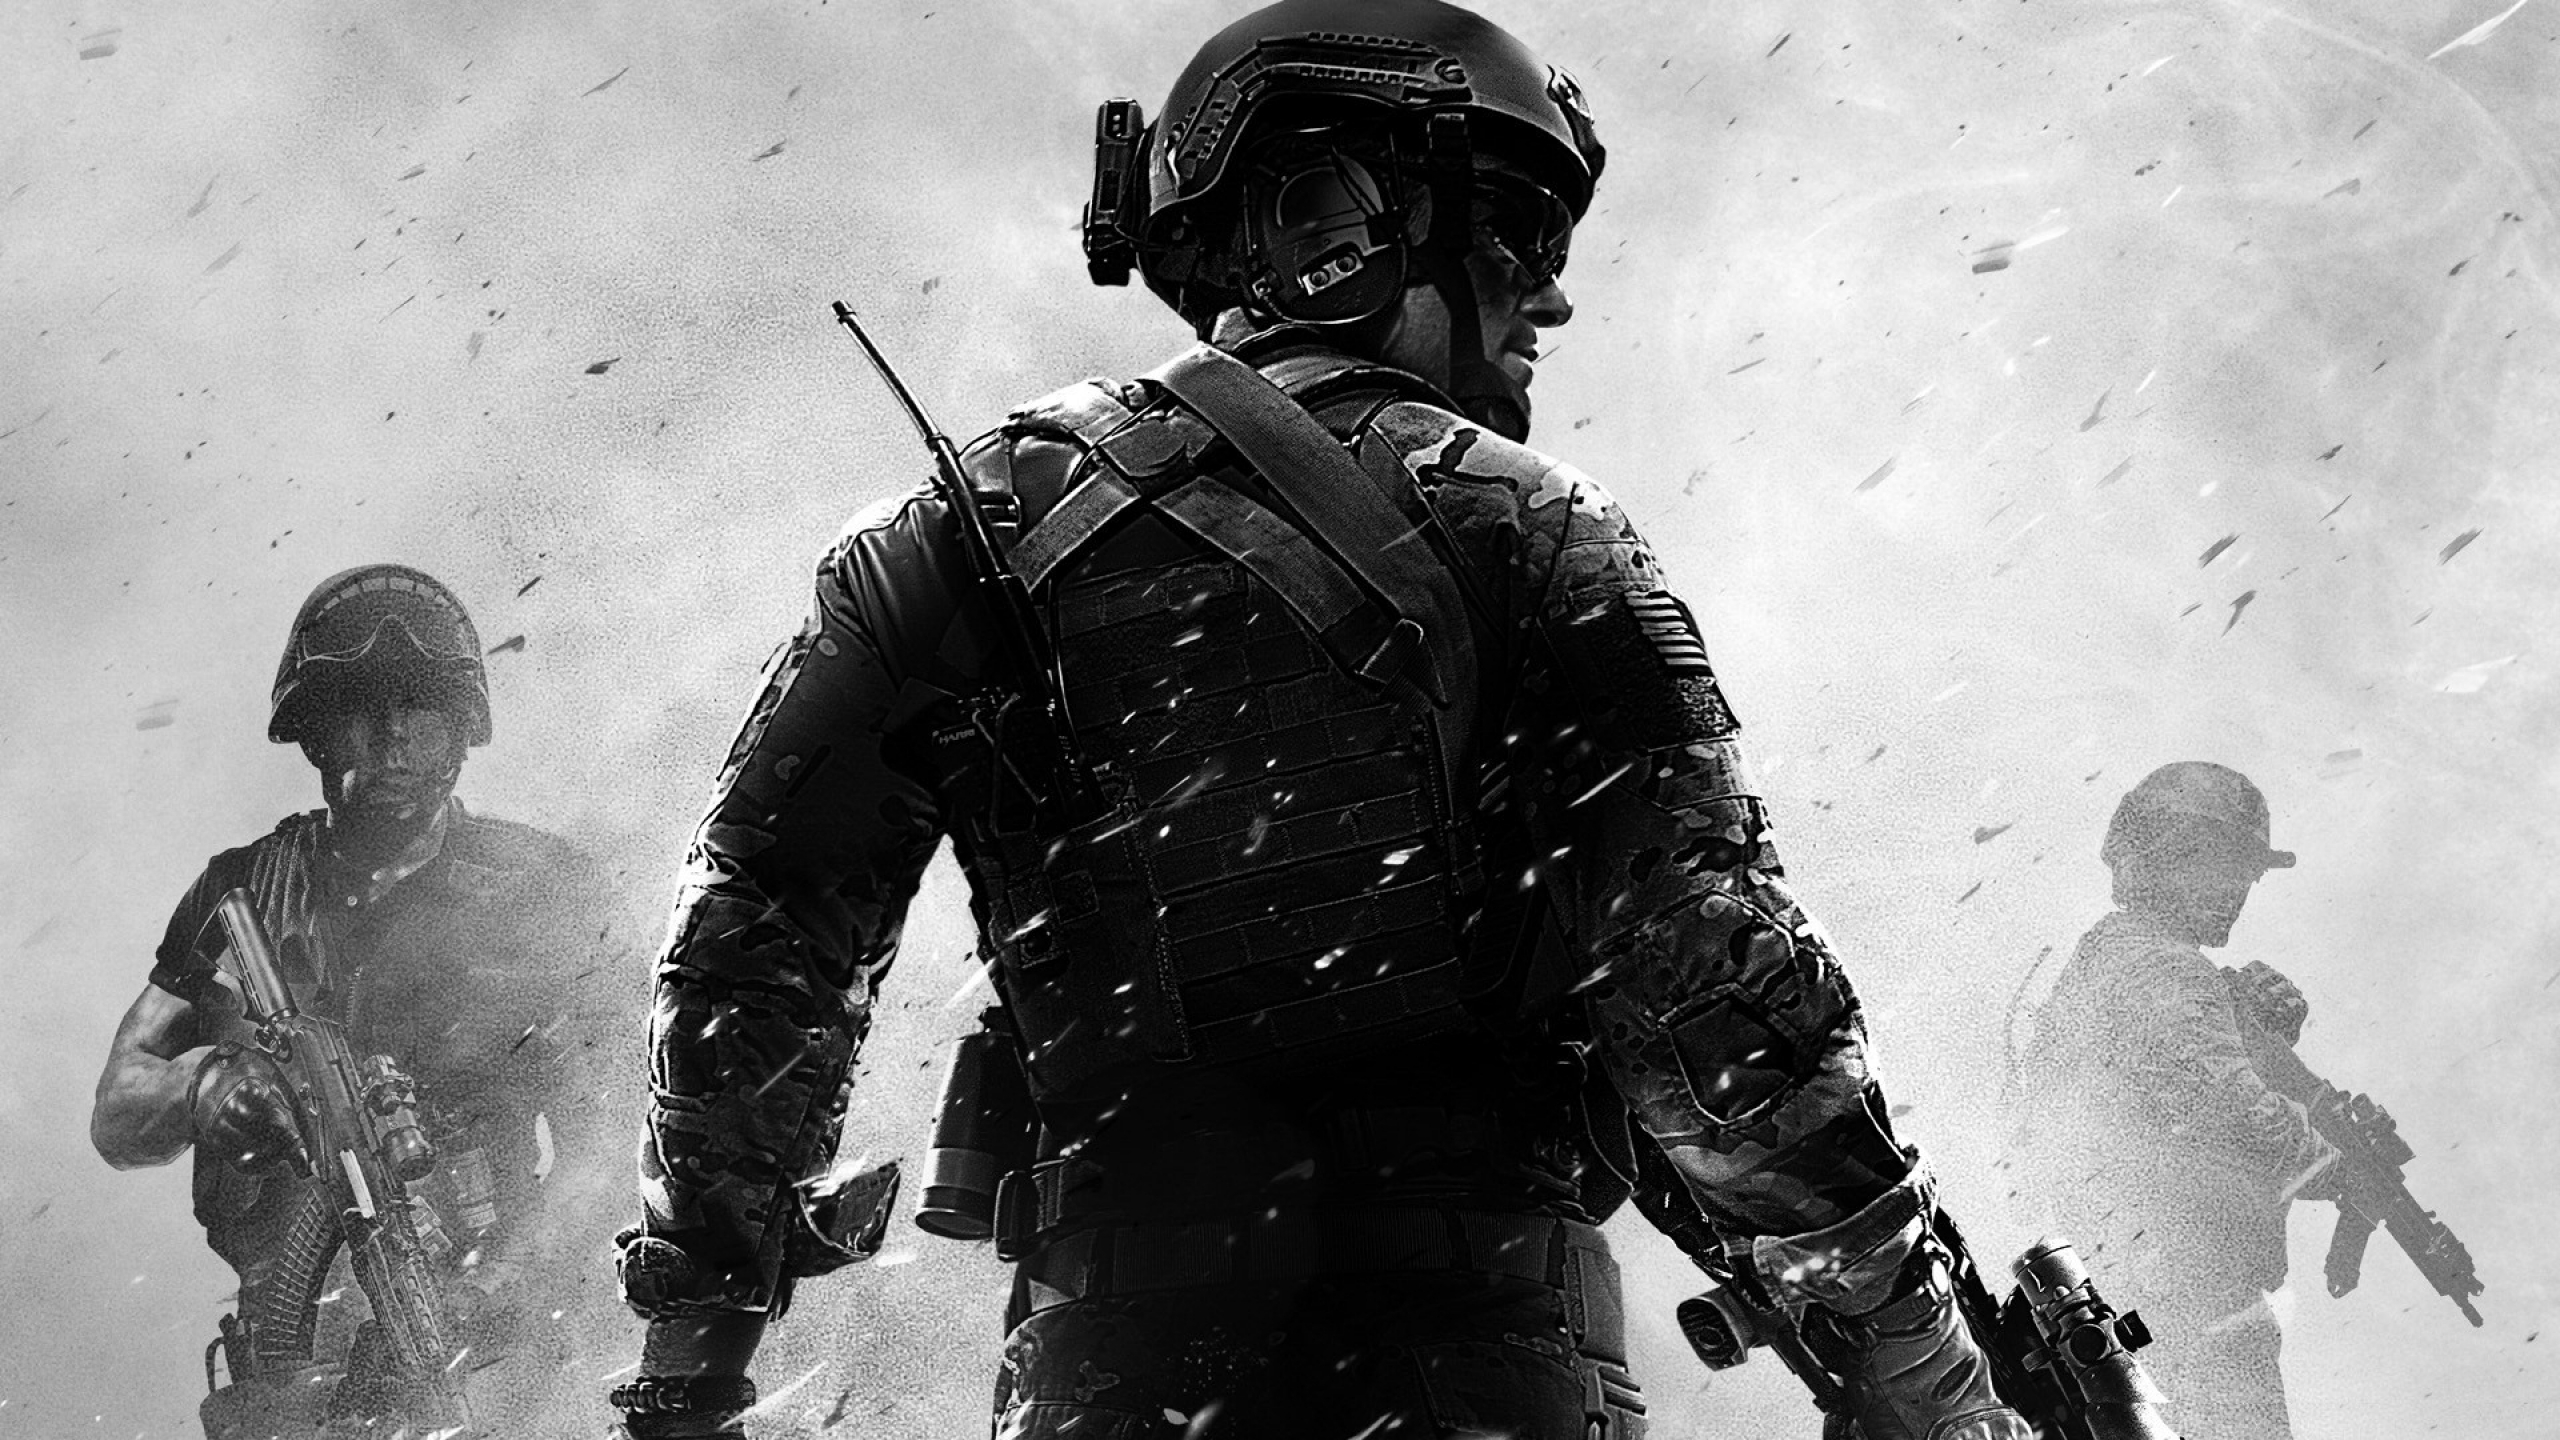 soldiers video games call of duty artwork call of duty modern warfare 2560x1440